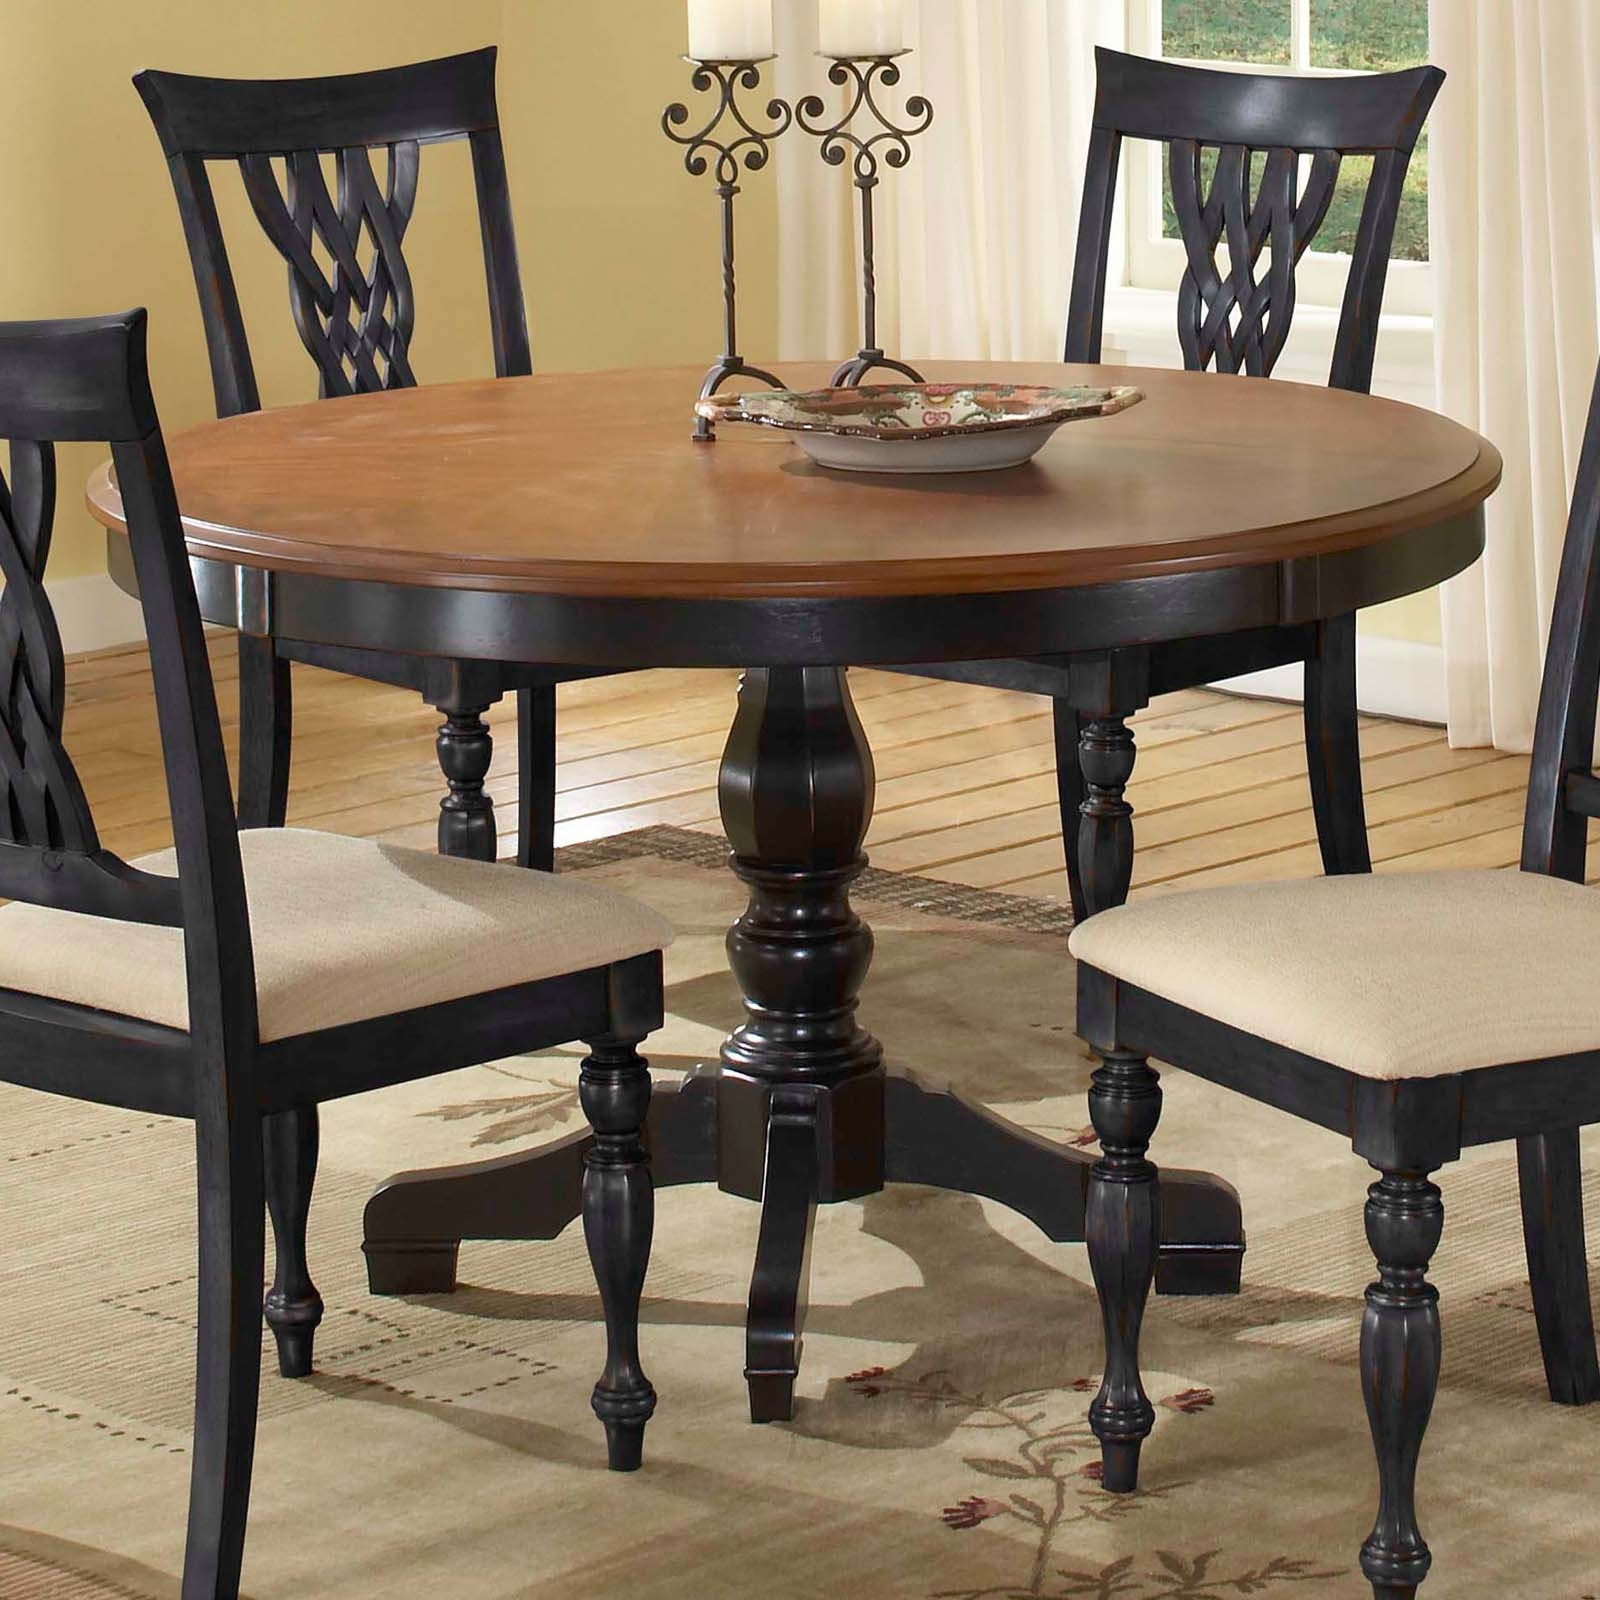 Dining Table Extension : Home Interior Design – Tips Build 48 Round Throughout Most Recently Released Jaxon Round Extension Dining Tables (View 8 of 20)